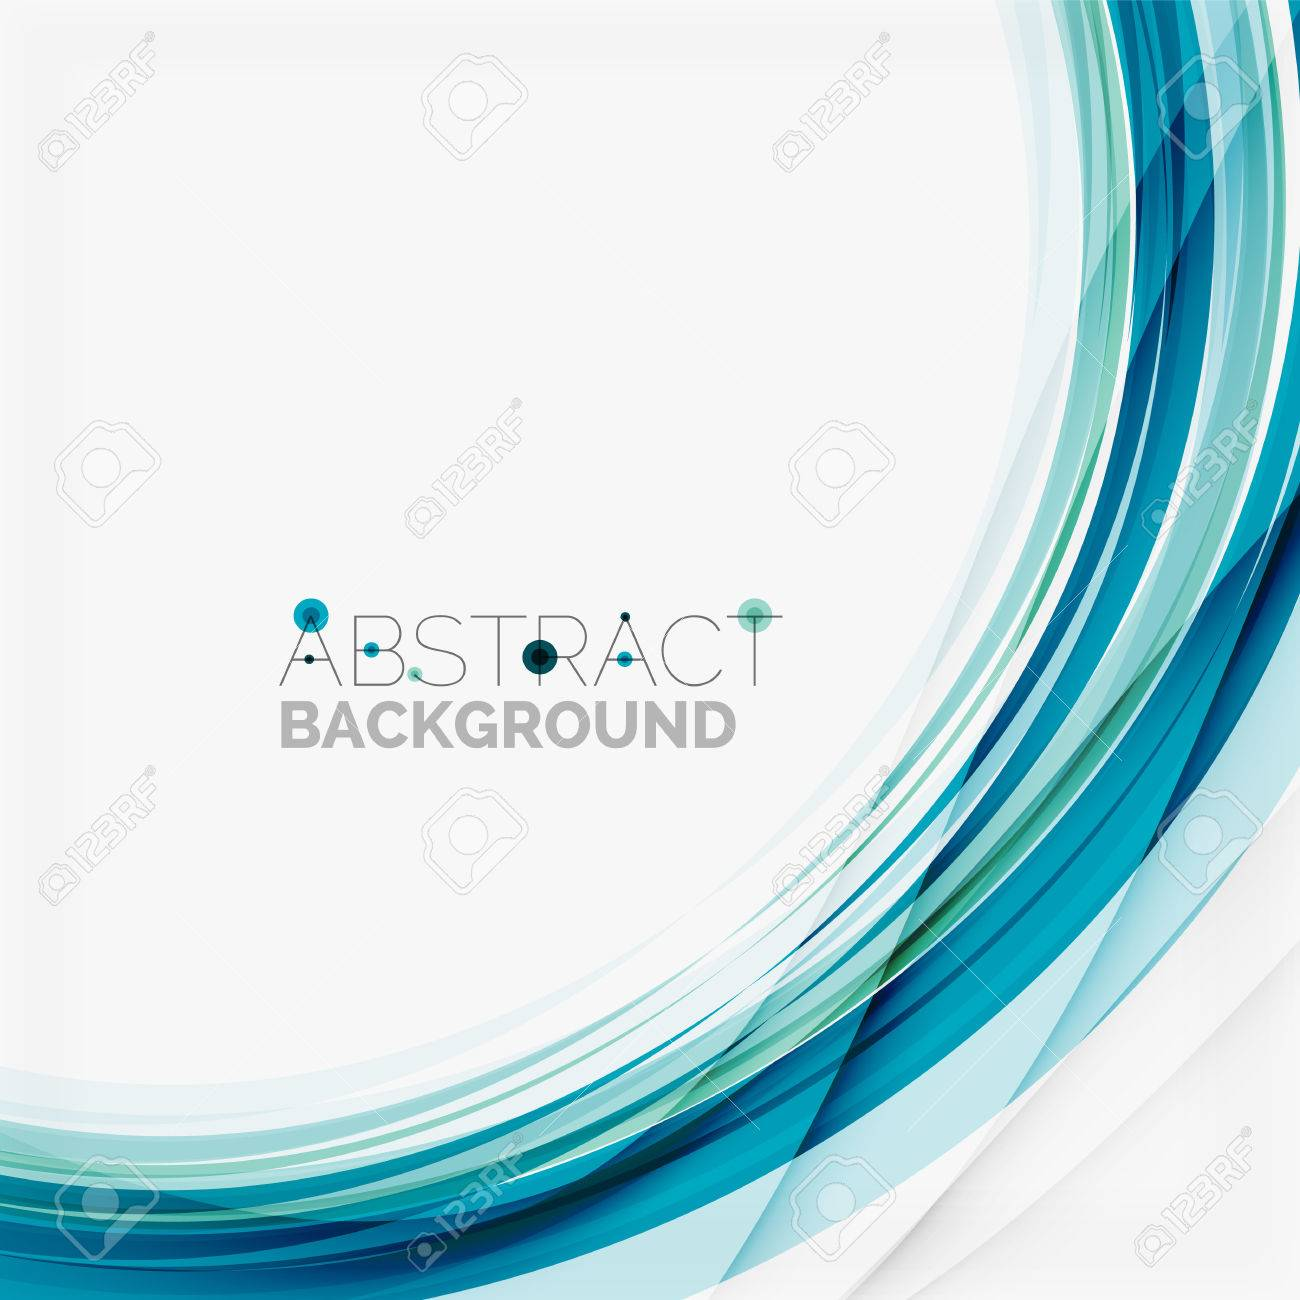 Blue wave abstract background - 40810818